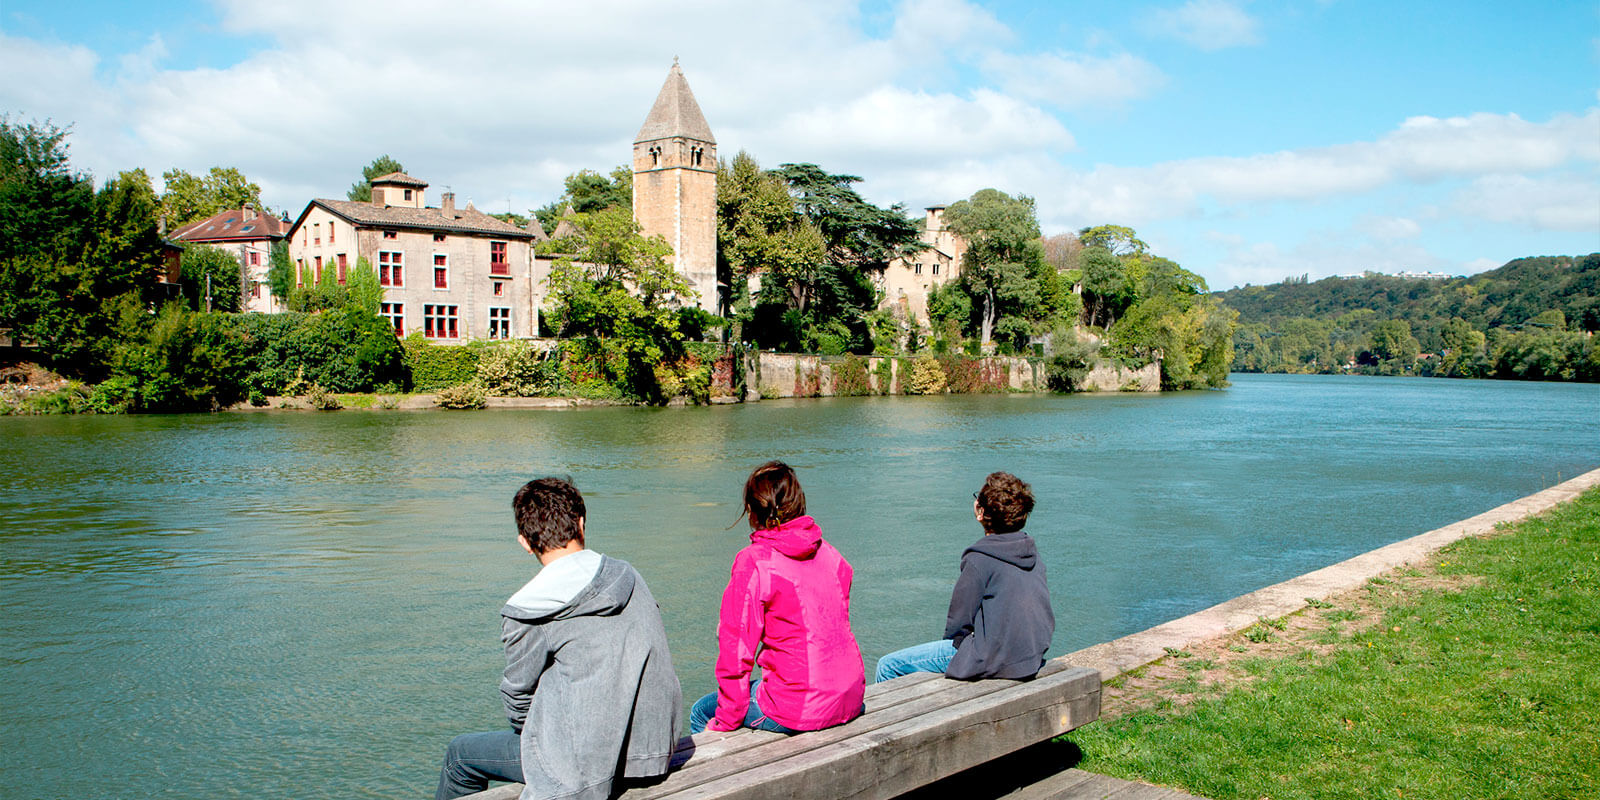 Kanpai Tourism - Sightseeing Excursions outside of Lyon